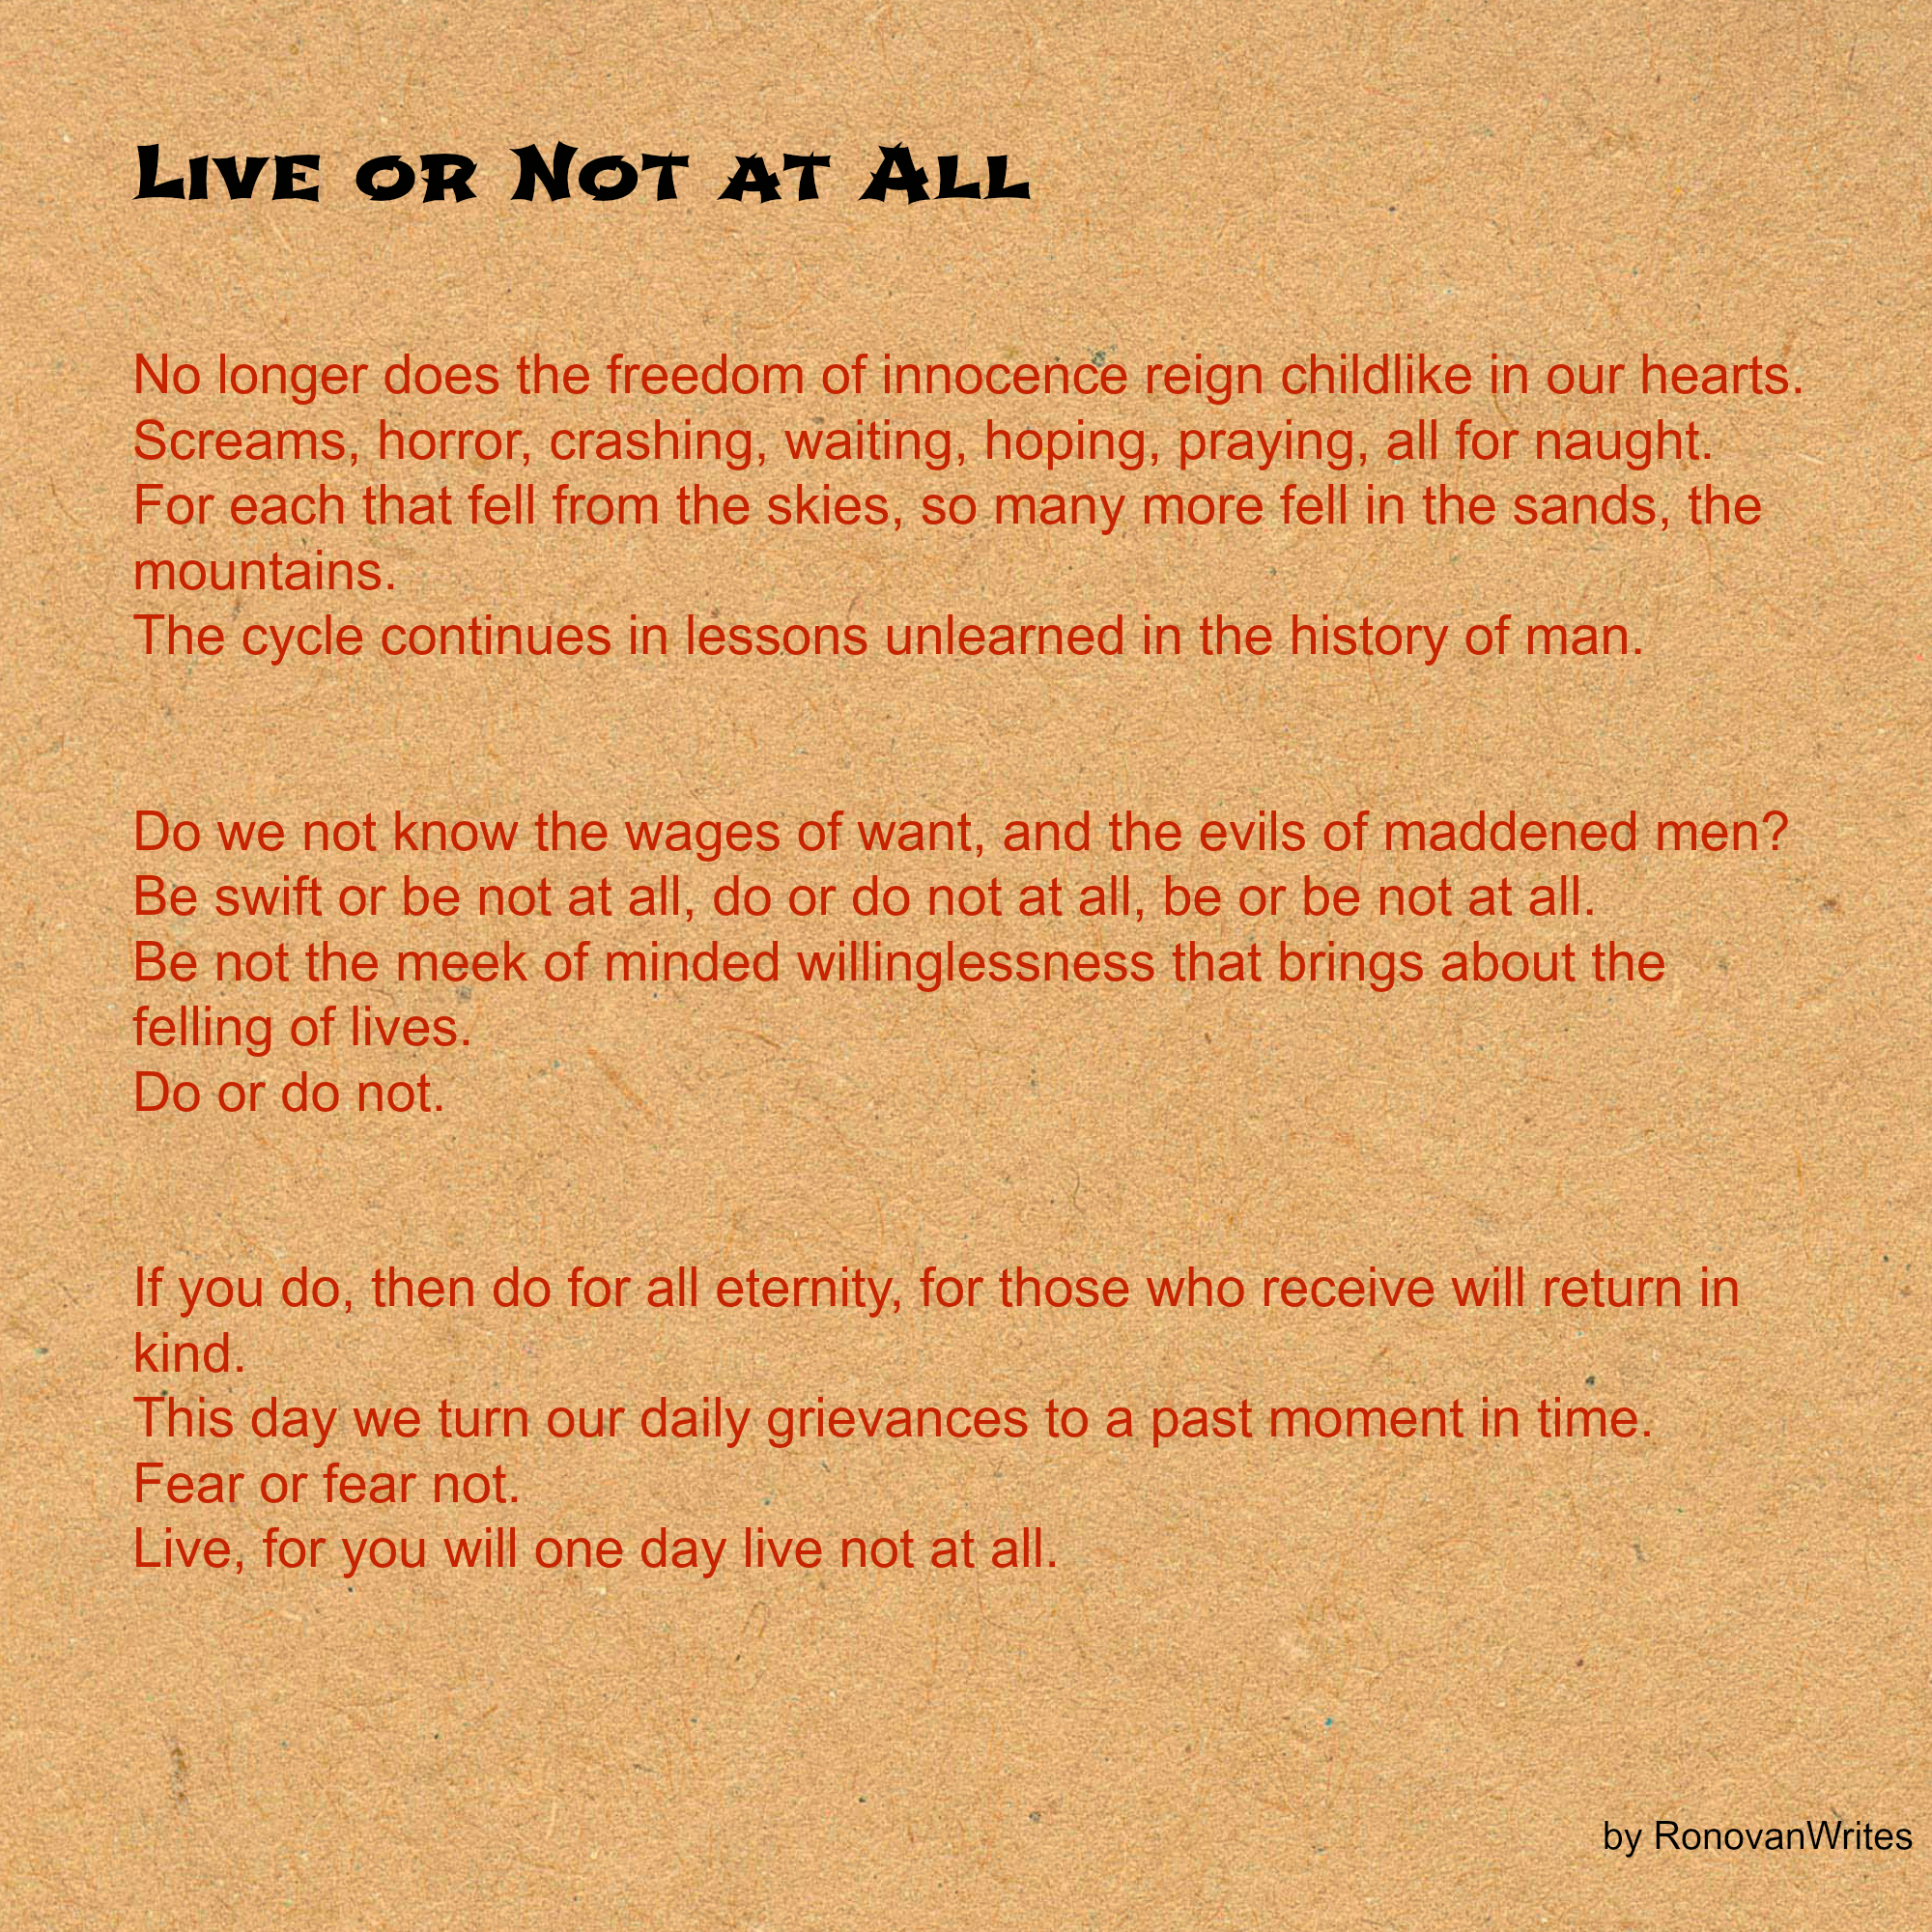 Live Or Not At All Ronovanwrites